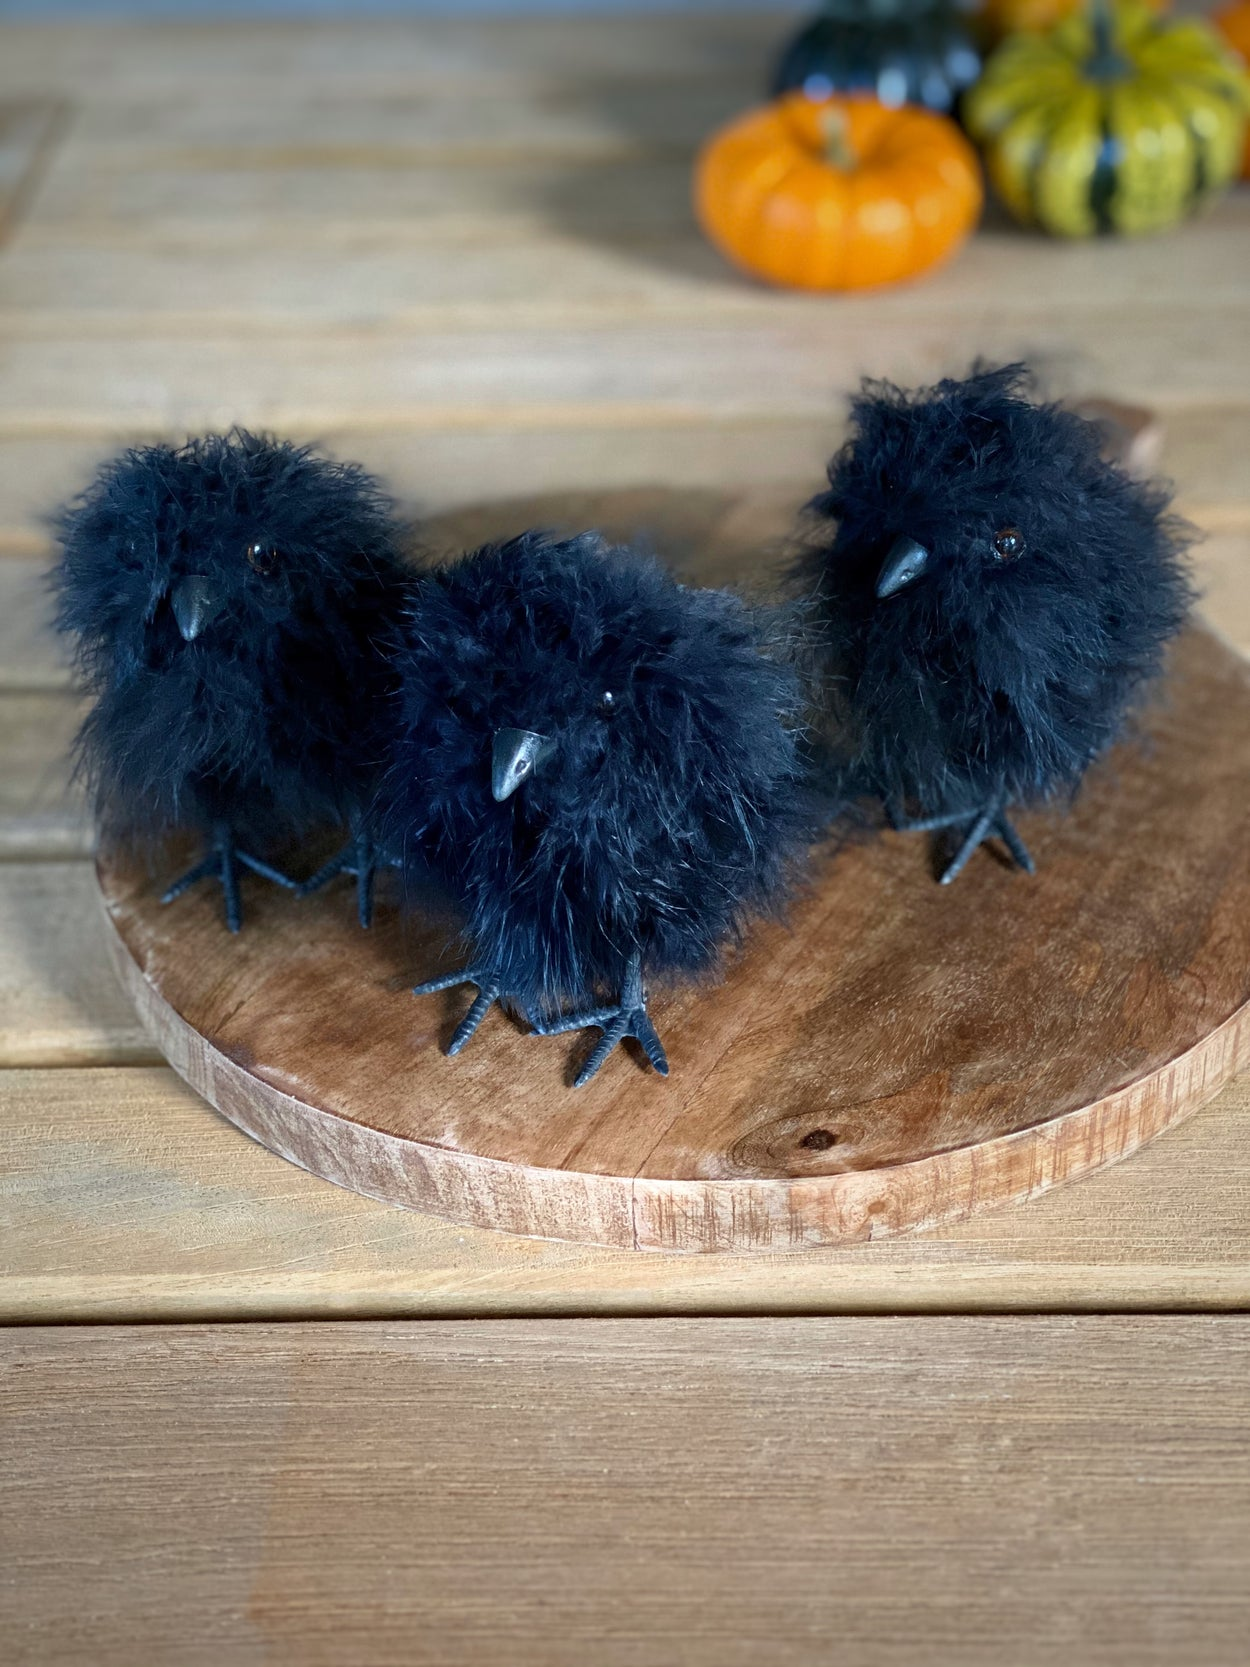 Crow Chicks